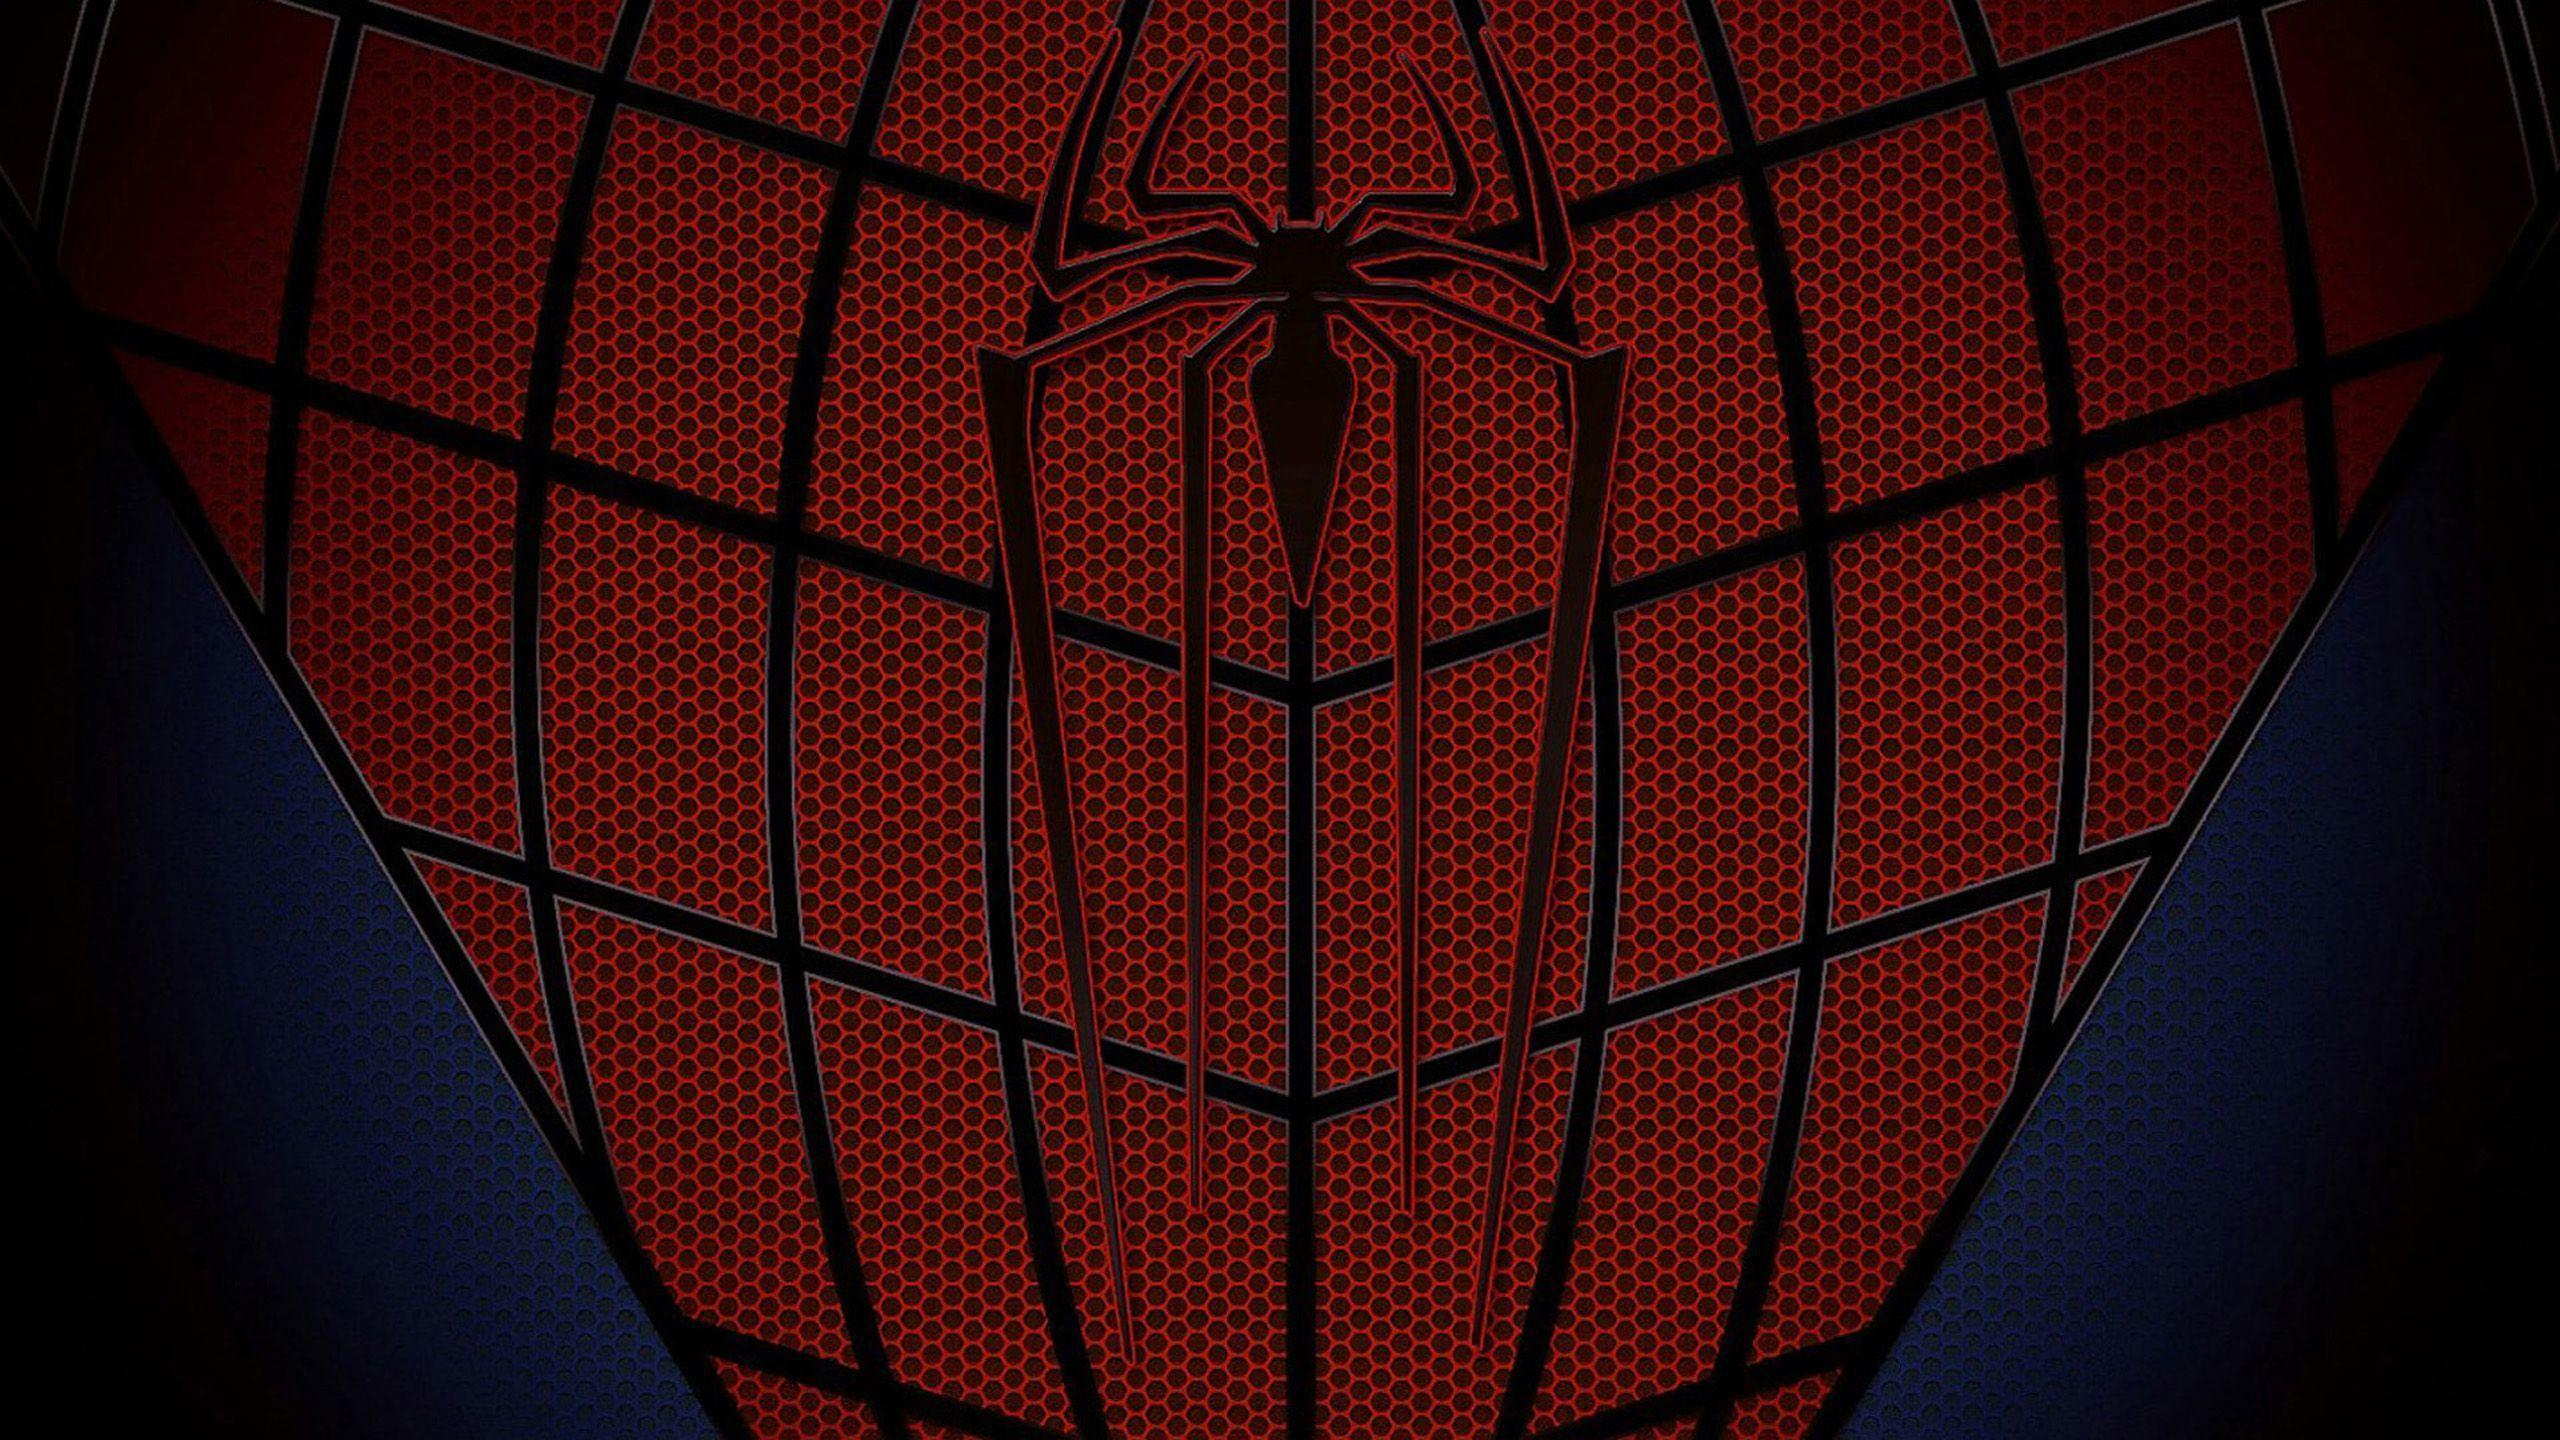 Spiderman big logo wallpapers, HD Wallpapers Downloads